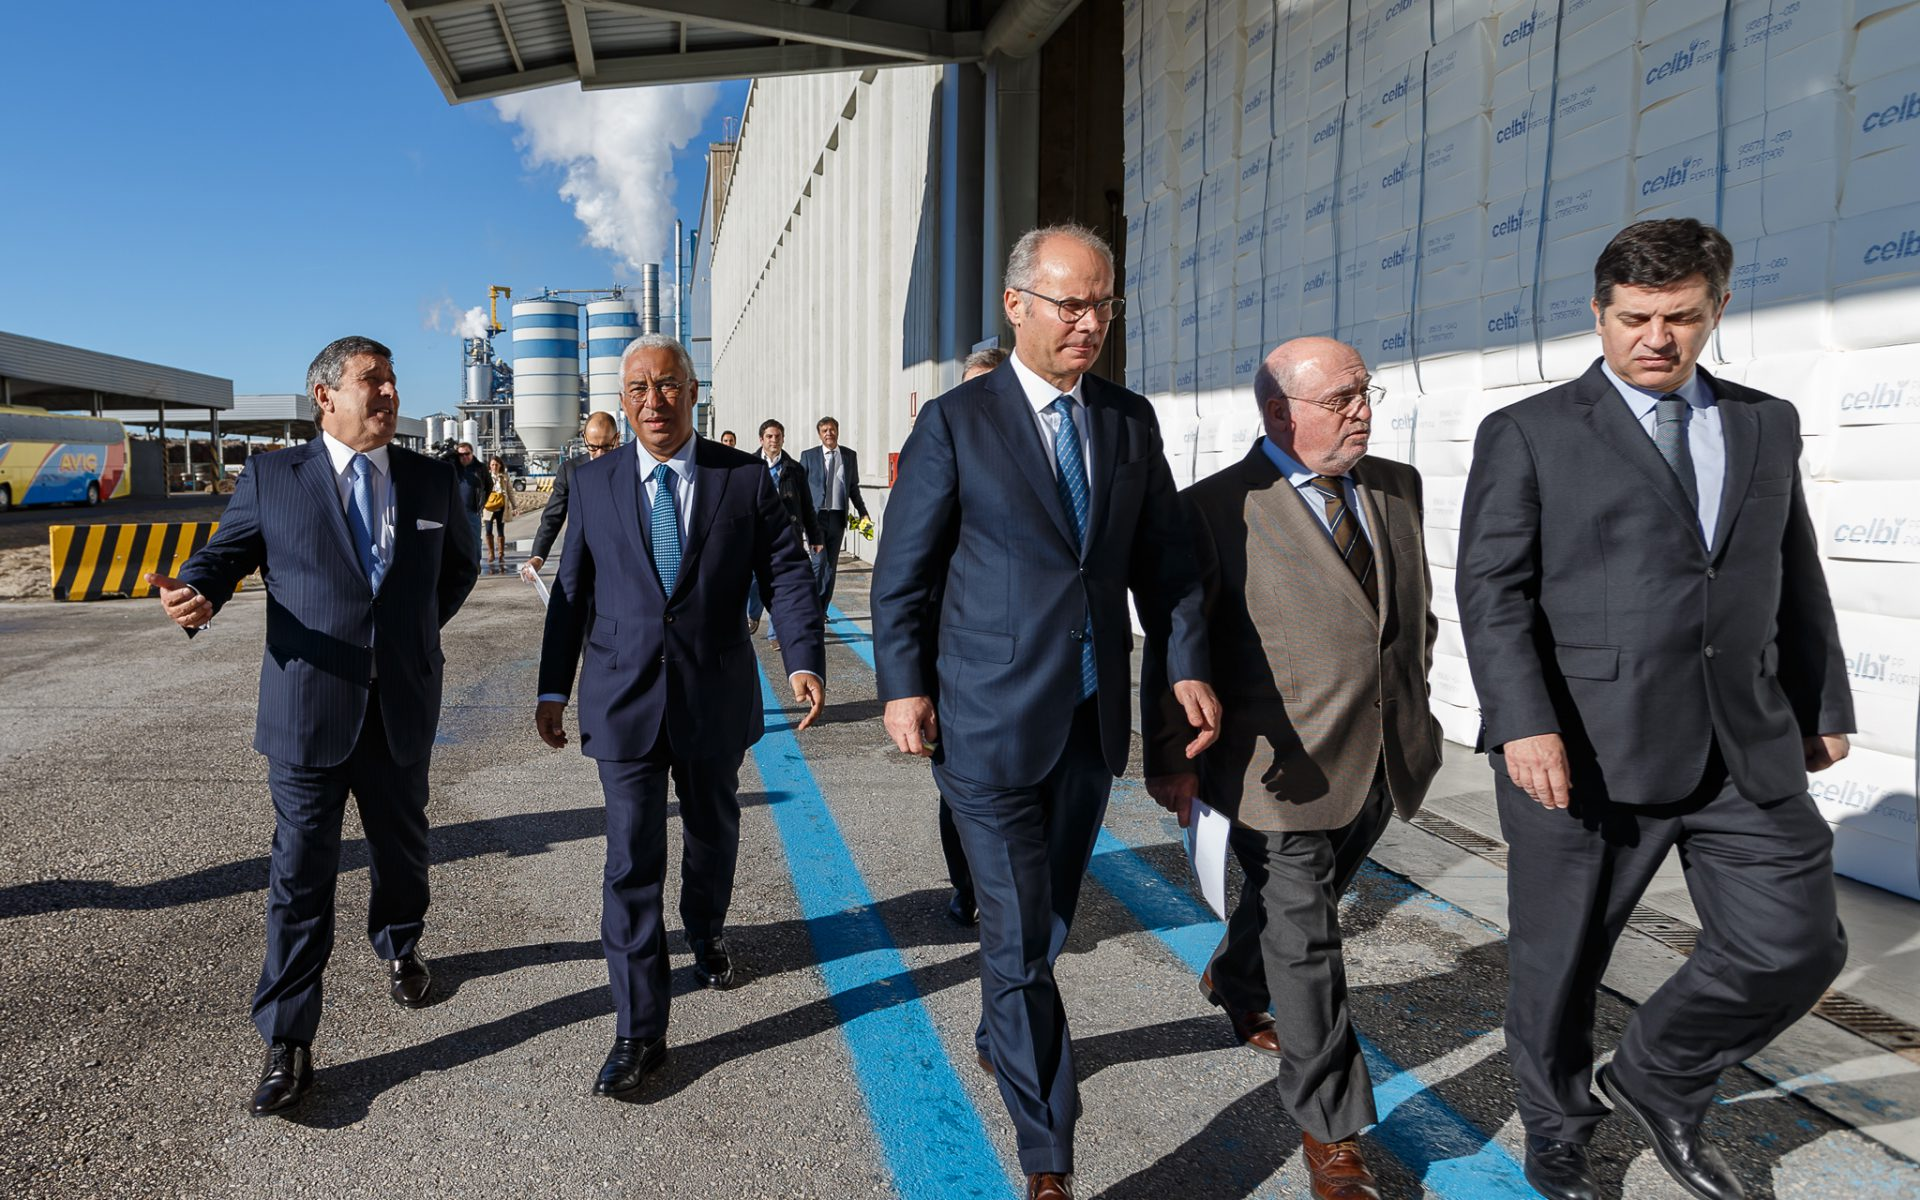 Paulo Fernandes and Borges de Oliveira, received the Prime Minister, António Costa, at the ceremony that sealed the investment agreement with the Portuguese state